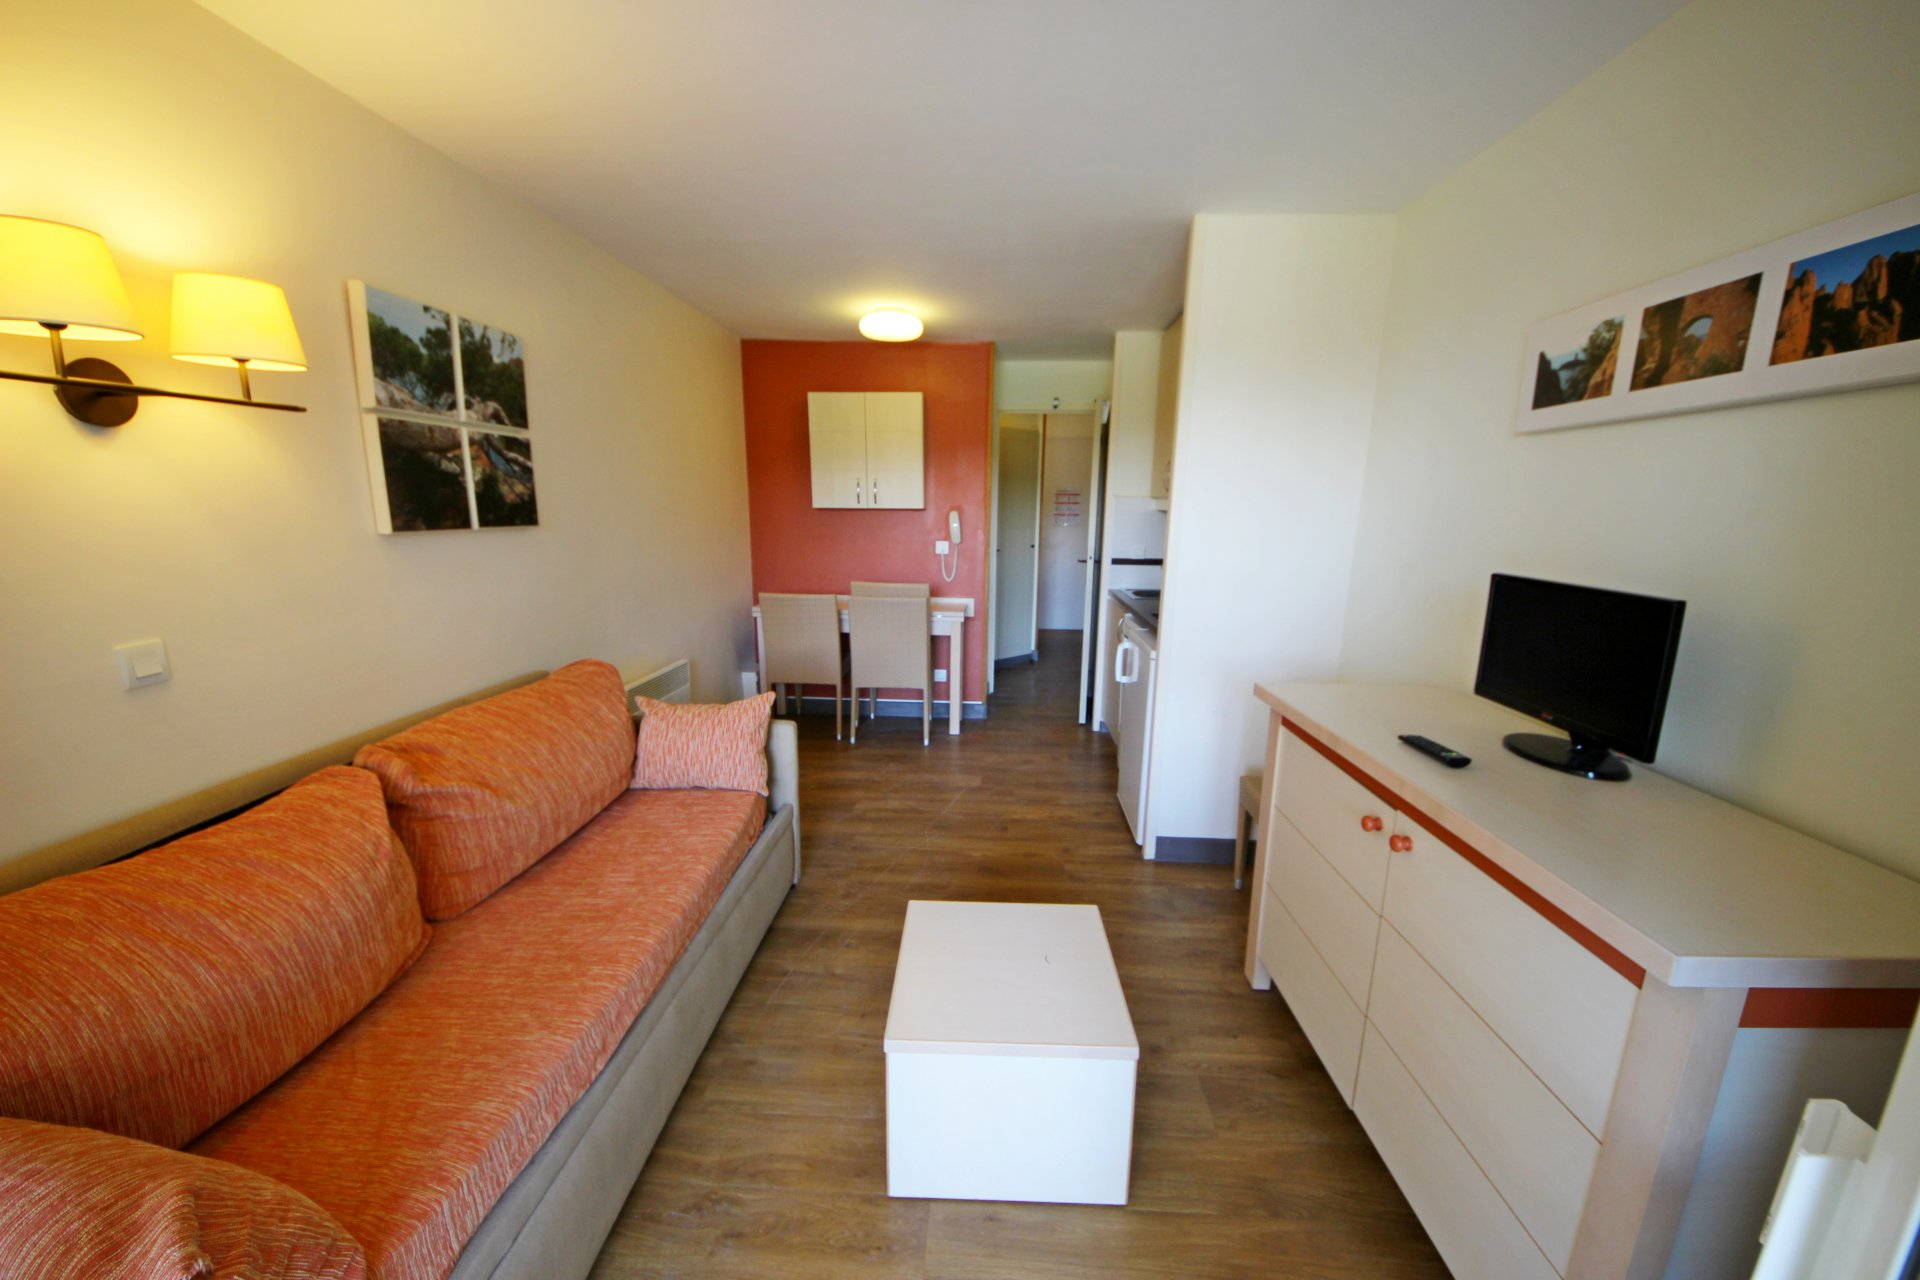 Apartment Position north west, General condition Excellent, Kitchen Kitchenette